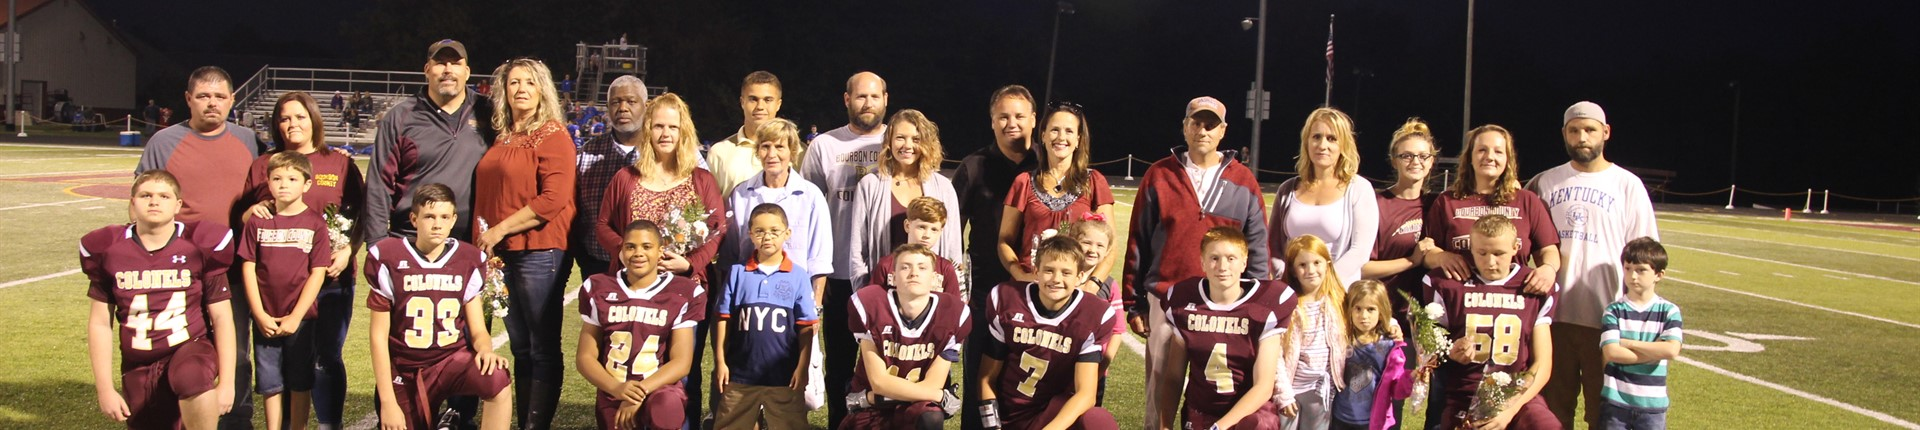 Bourbon County Middle School's 8th grade football players with family on the field.